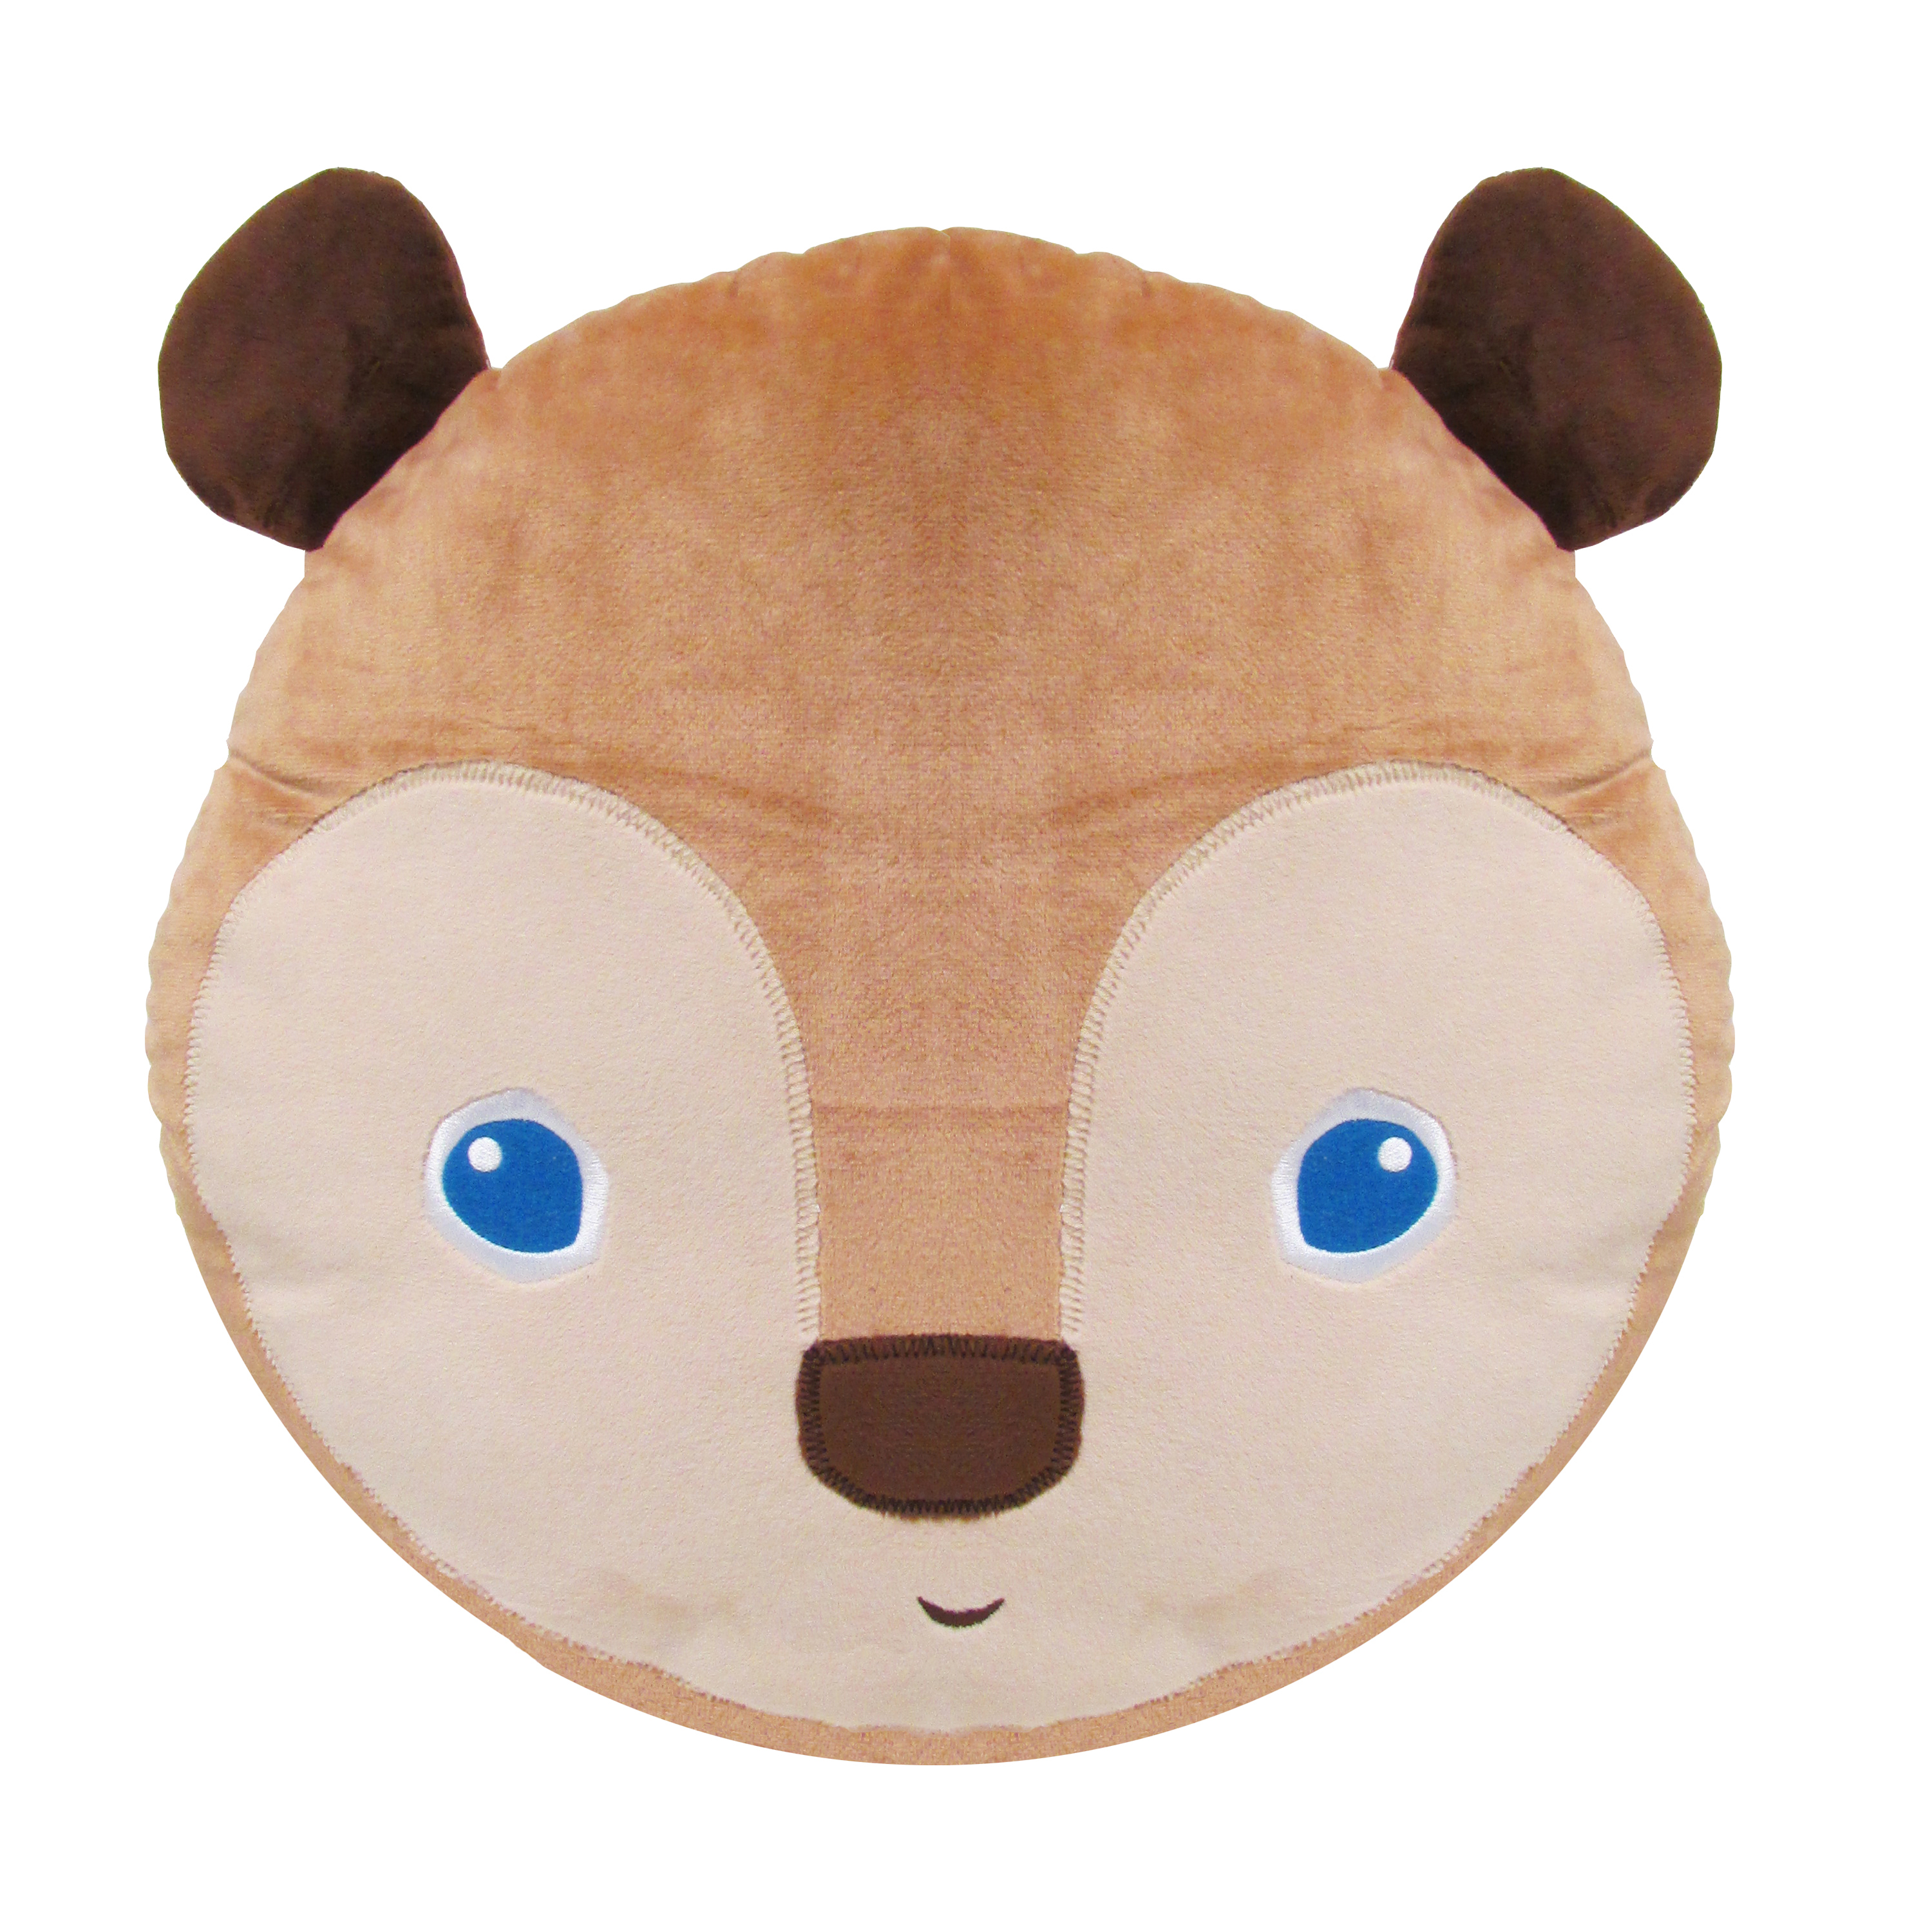 Eric Carle Plush Pillow with Pocket, Brown Bear